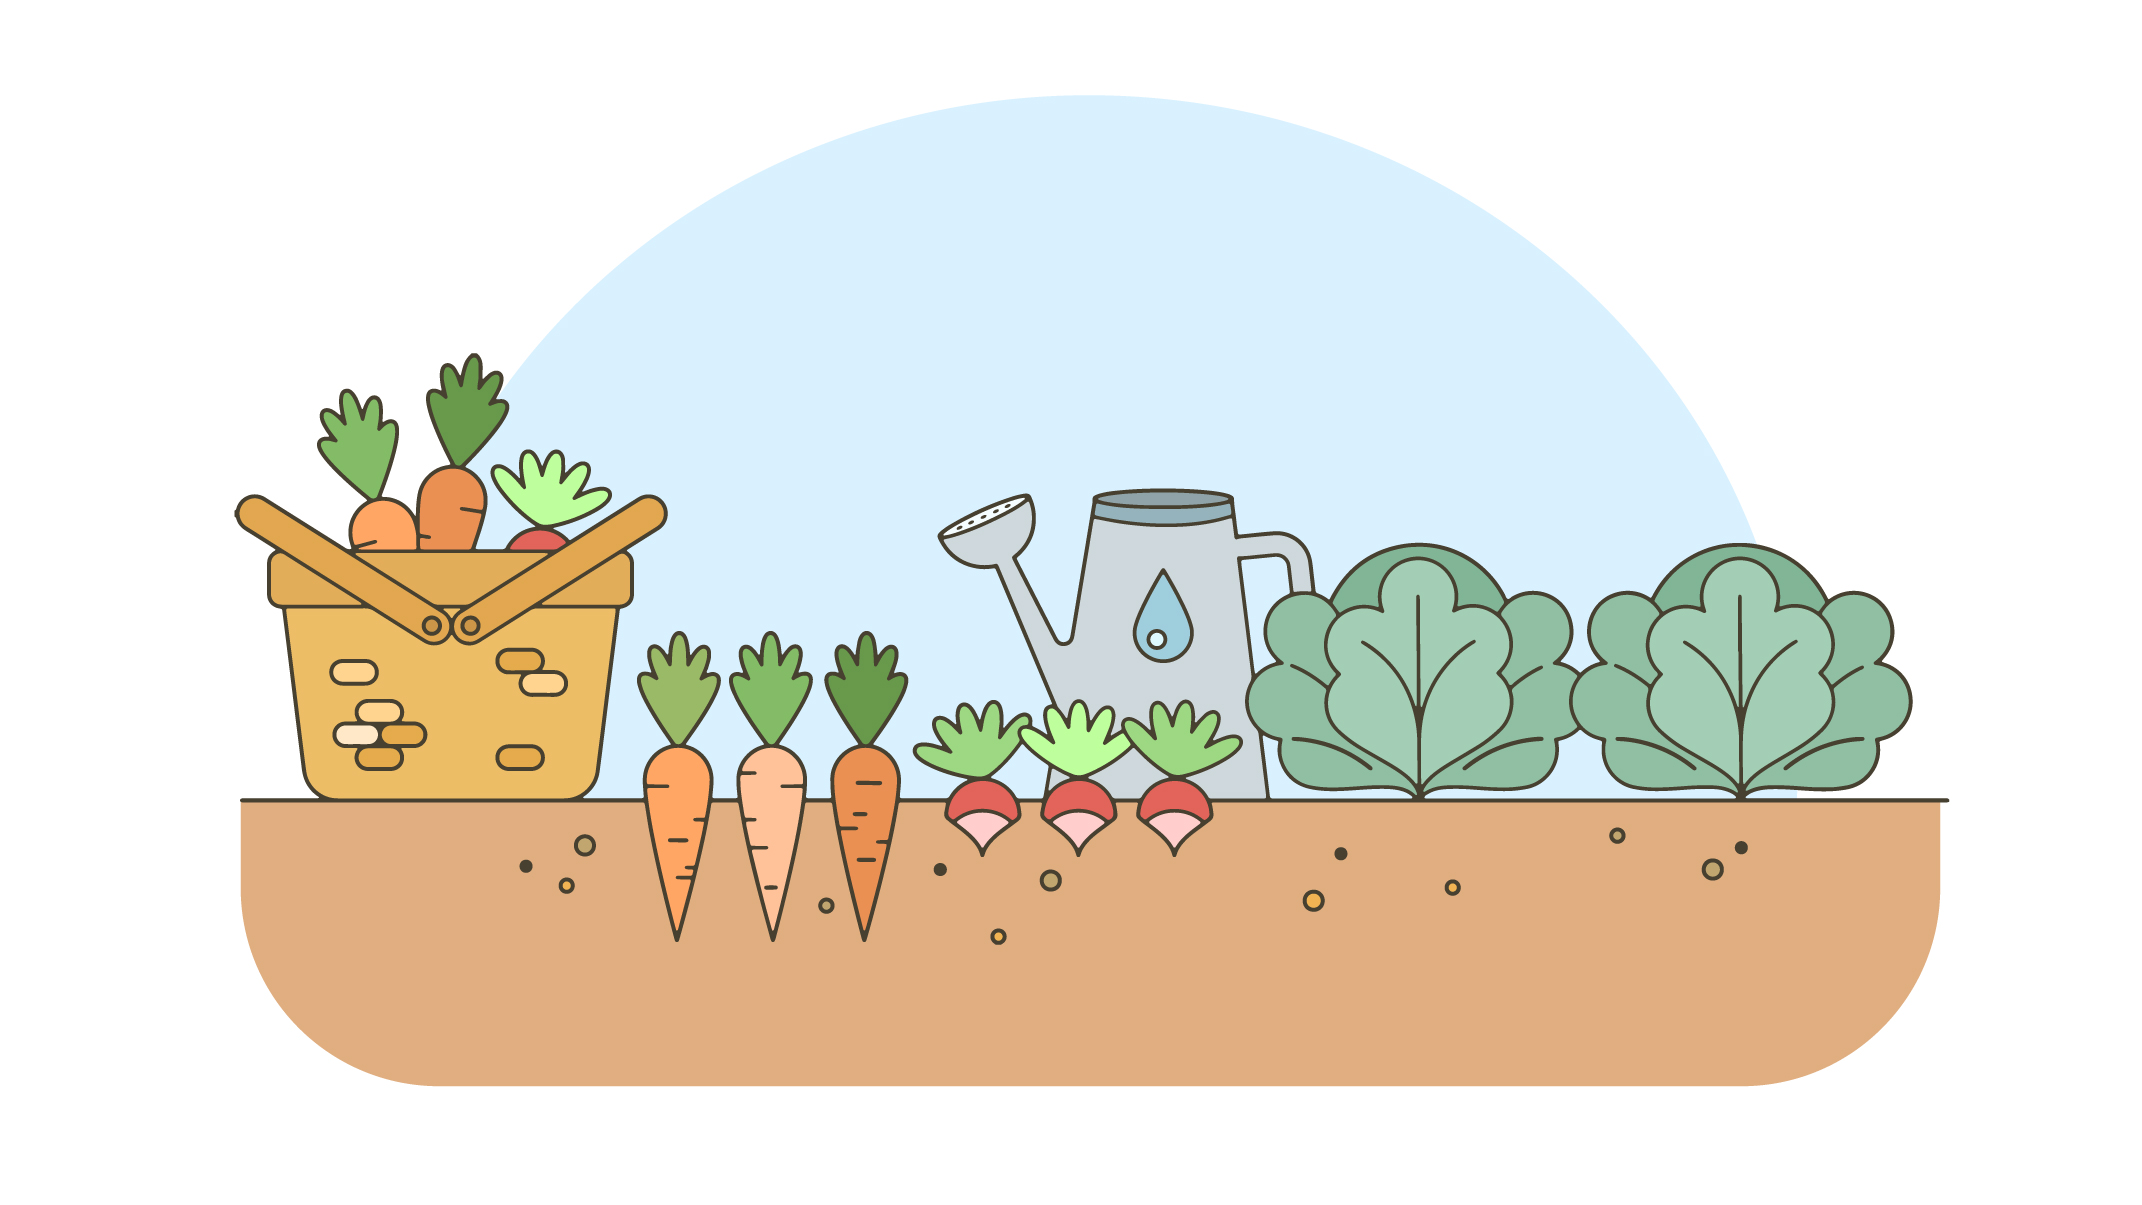 Graphic depicting vegetables growing